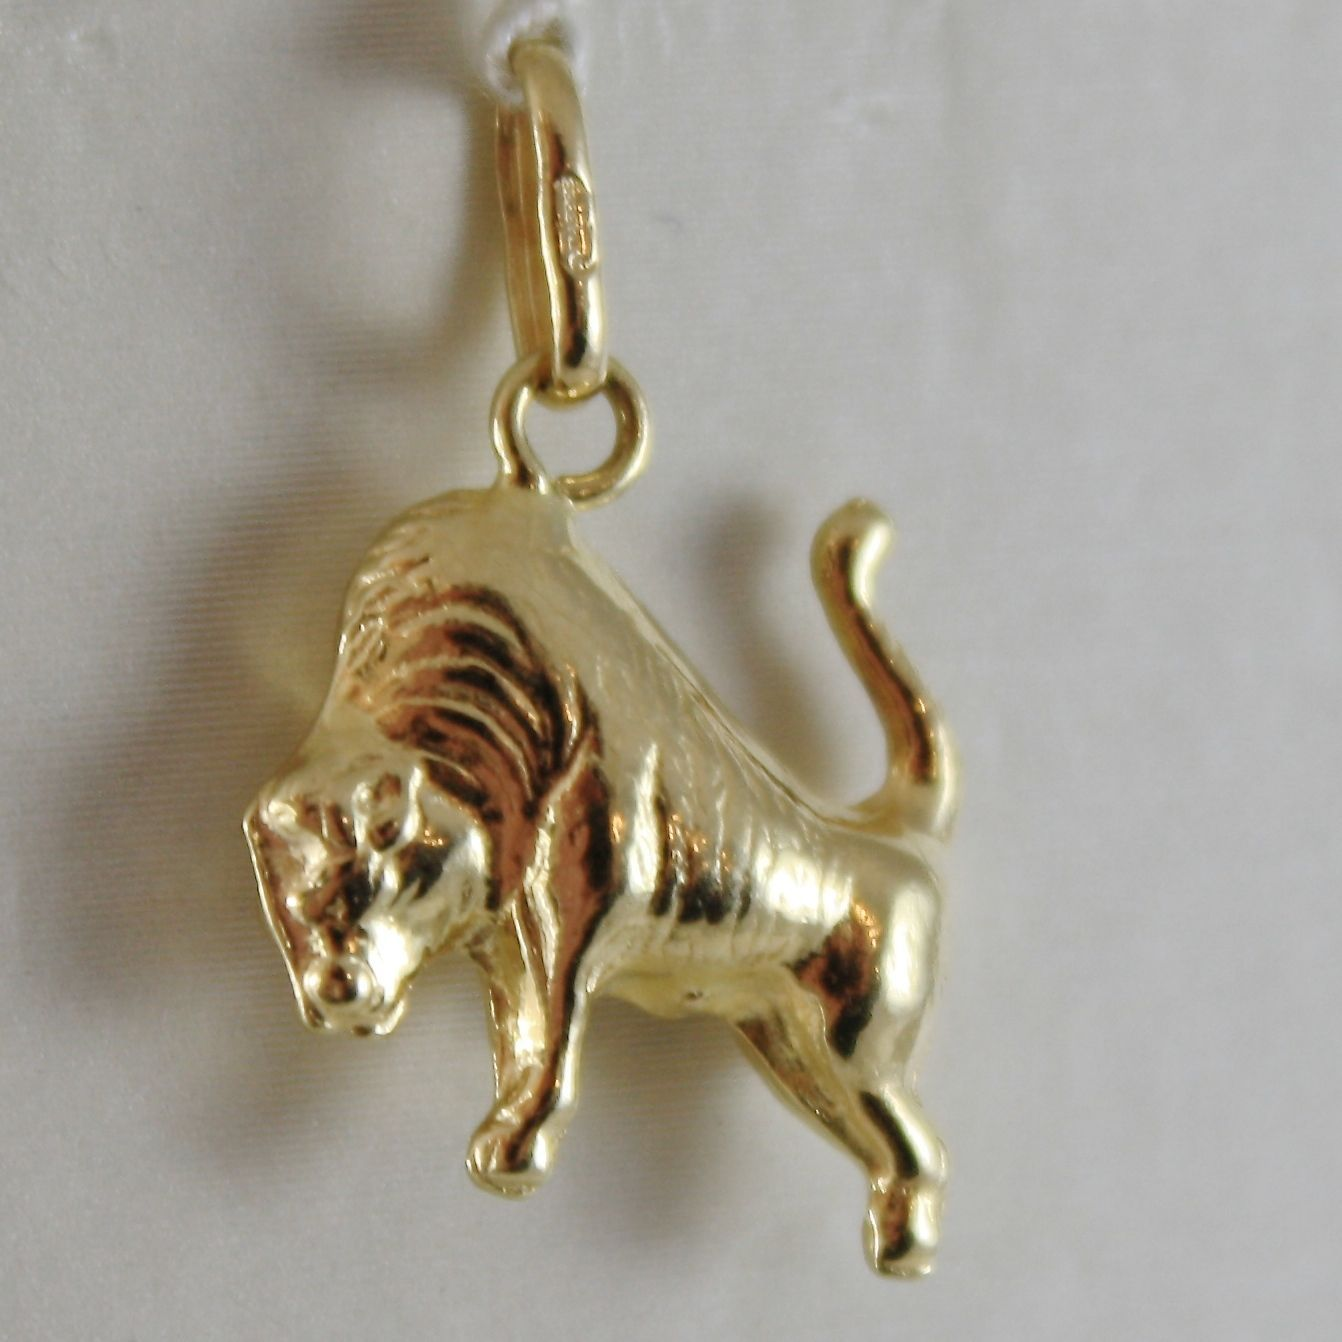 18K YELLOW GOLD BUFFALO PENDANT, LENGTH 0.79 INCHES, CHARMS, MADE IN ITALY